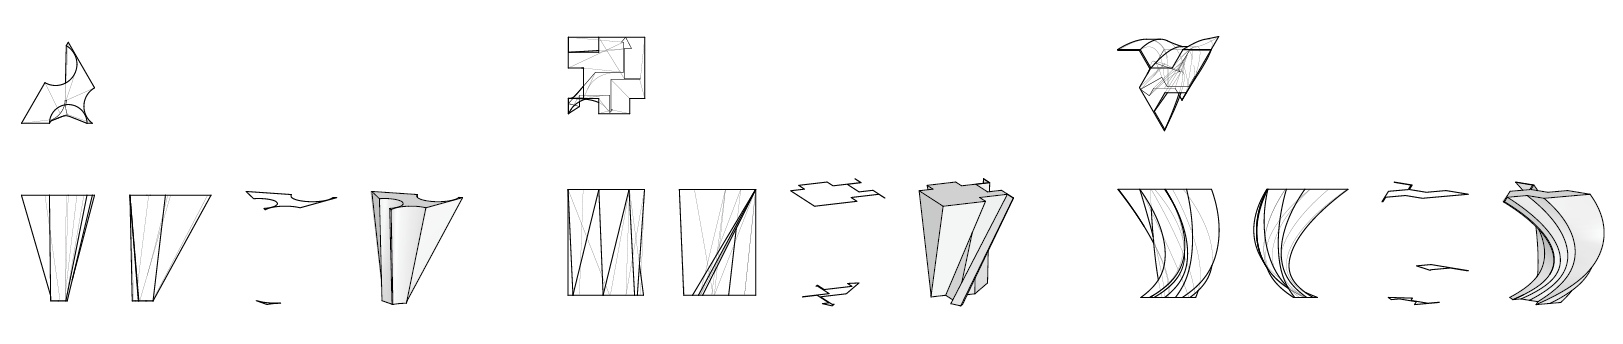 3D forms generated from lofting two or three 2D parametric forms